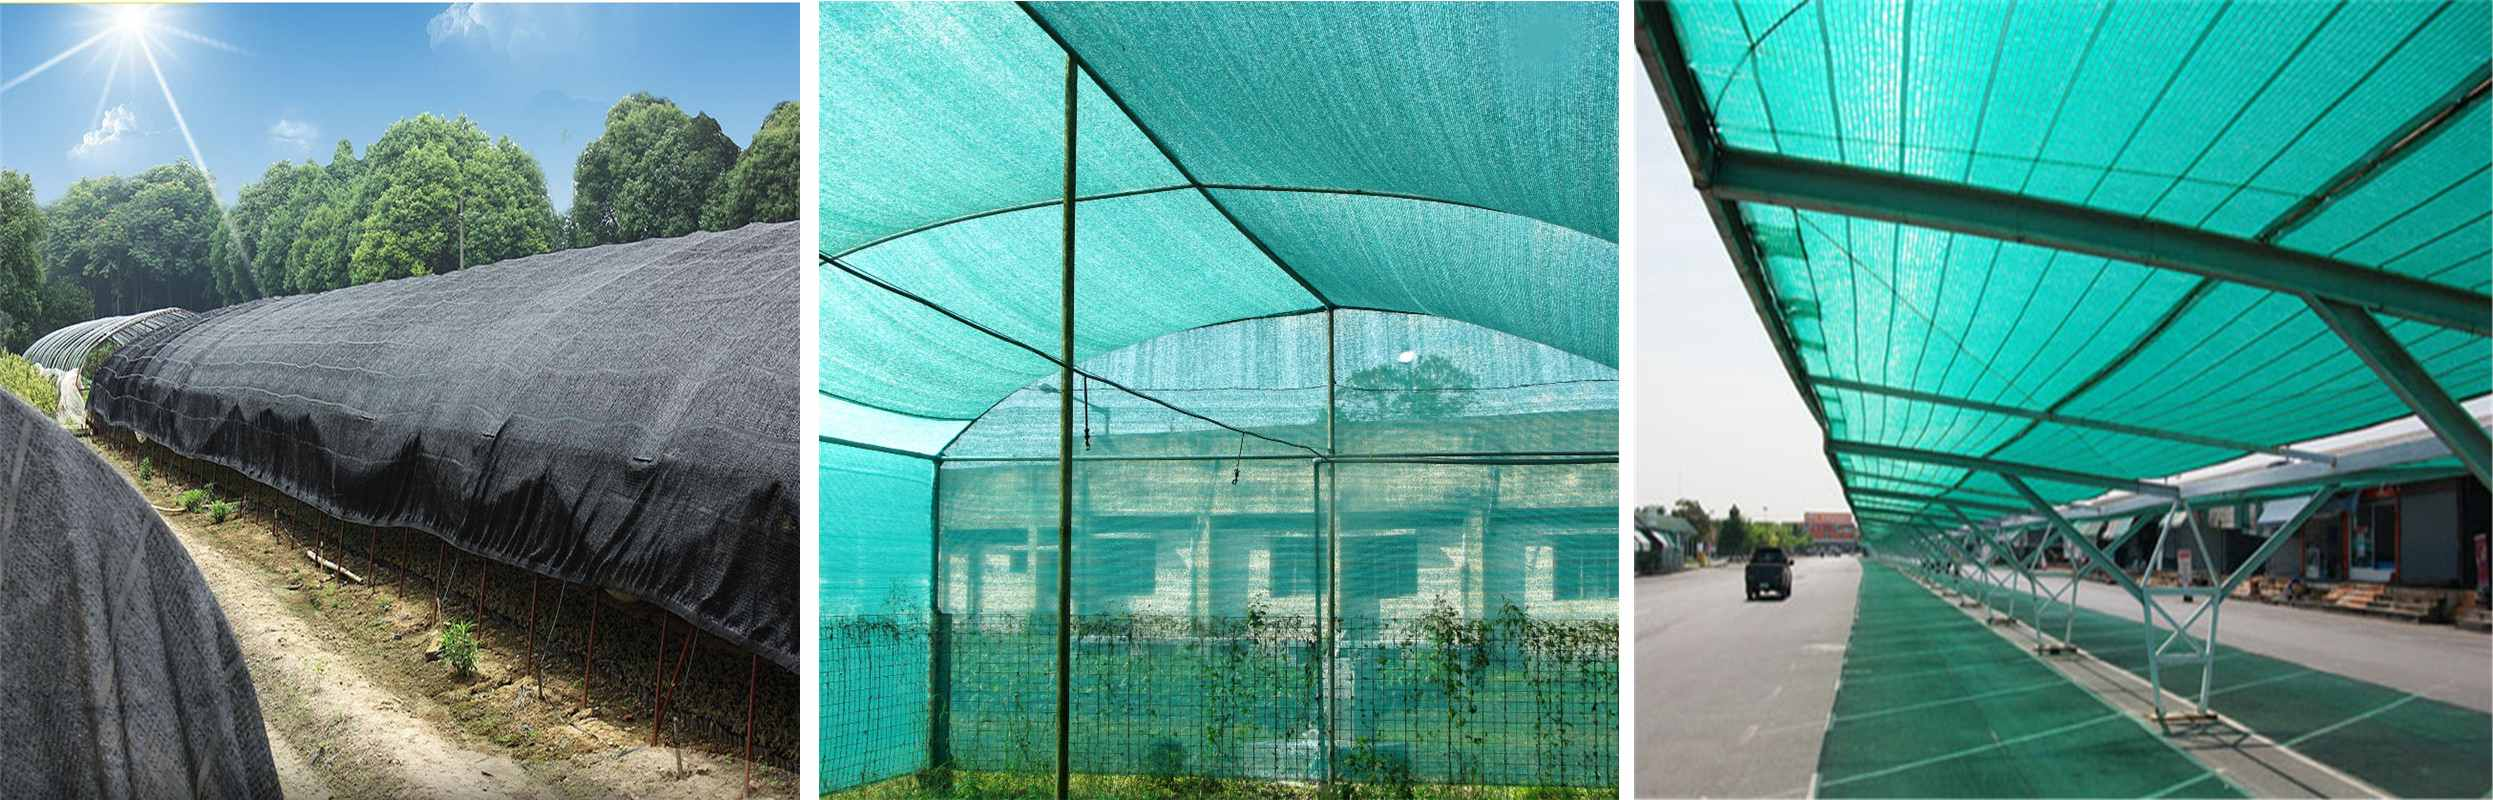 The advantages and uses of shade net are introduced